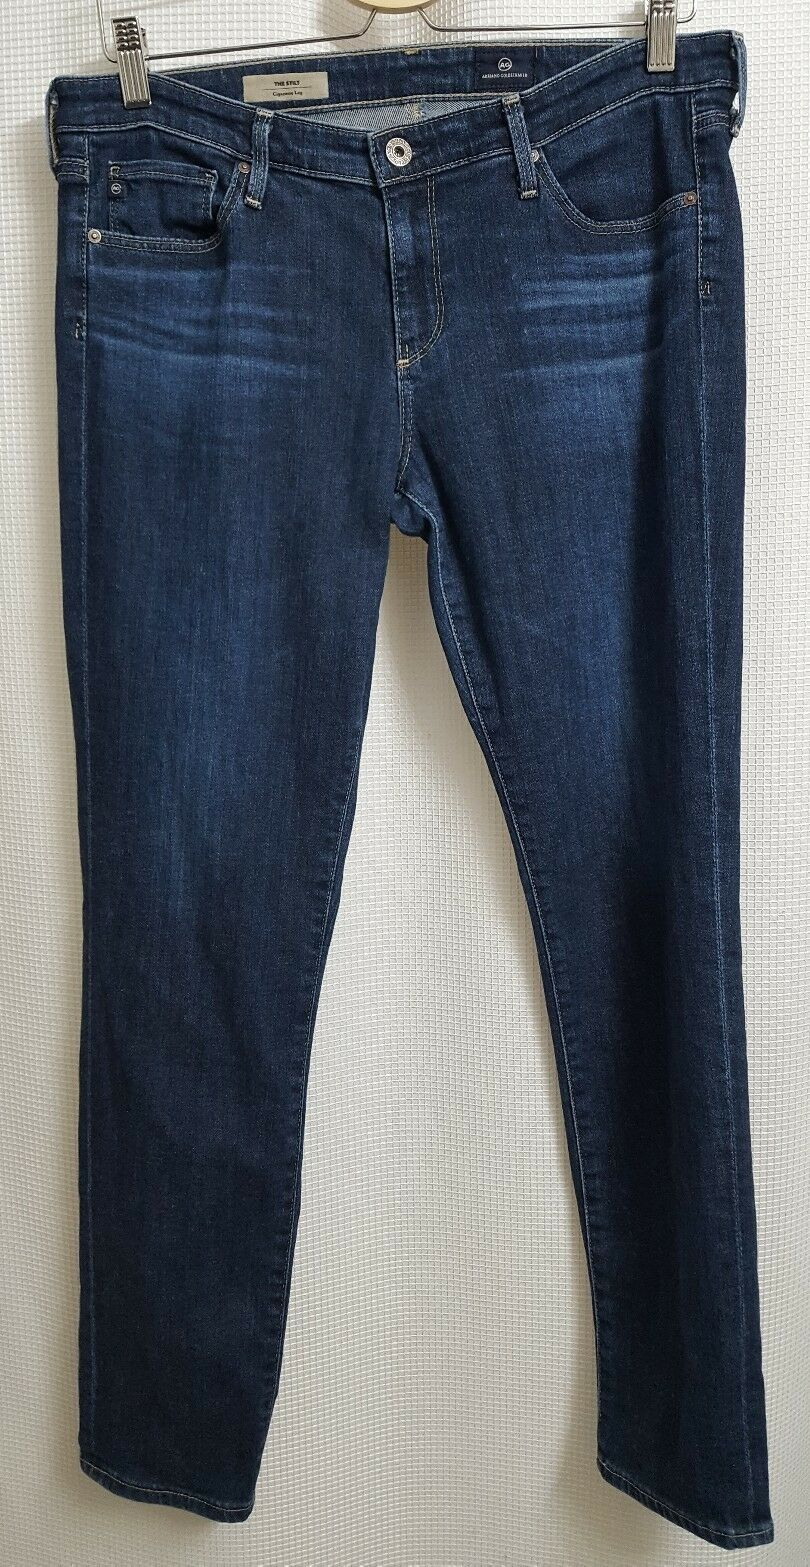 AG Adriano Goldschmied The Stilt Cigarette Leg Whiskerot Dark Wash Jeans sz 31R